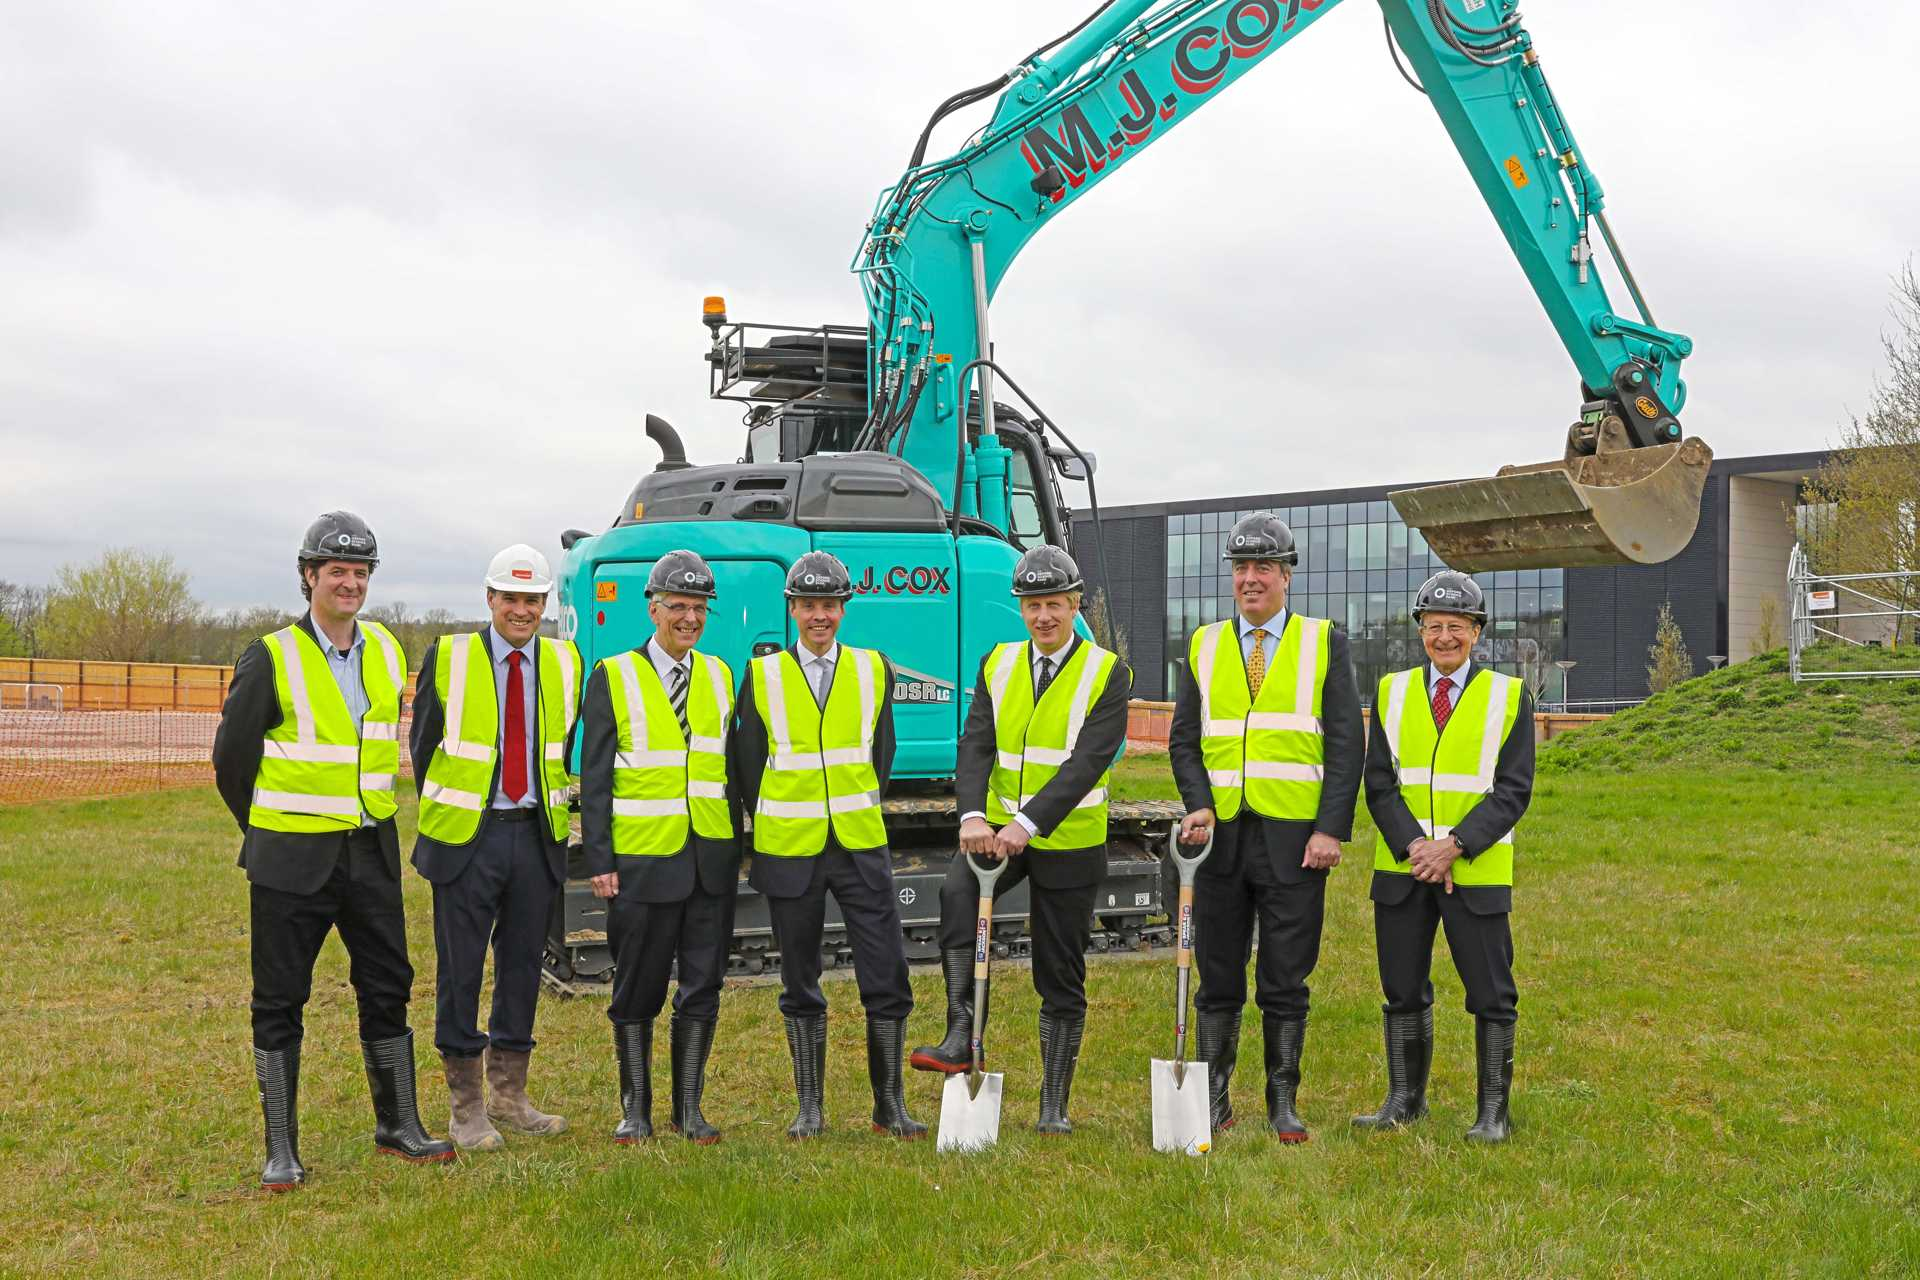 Minister breaks ground and unveils name for £13 million office & laboratory building